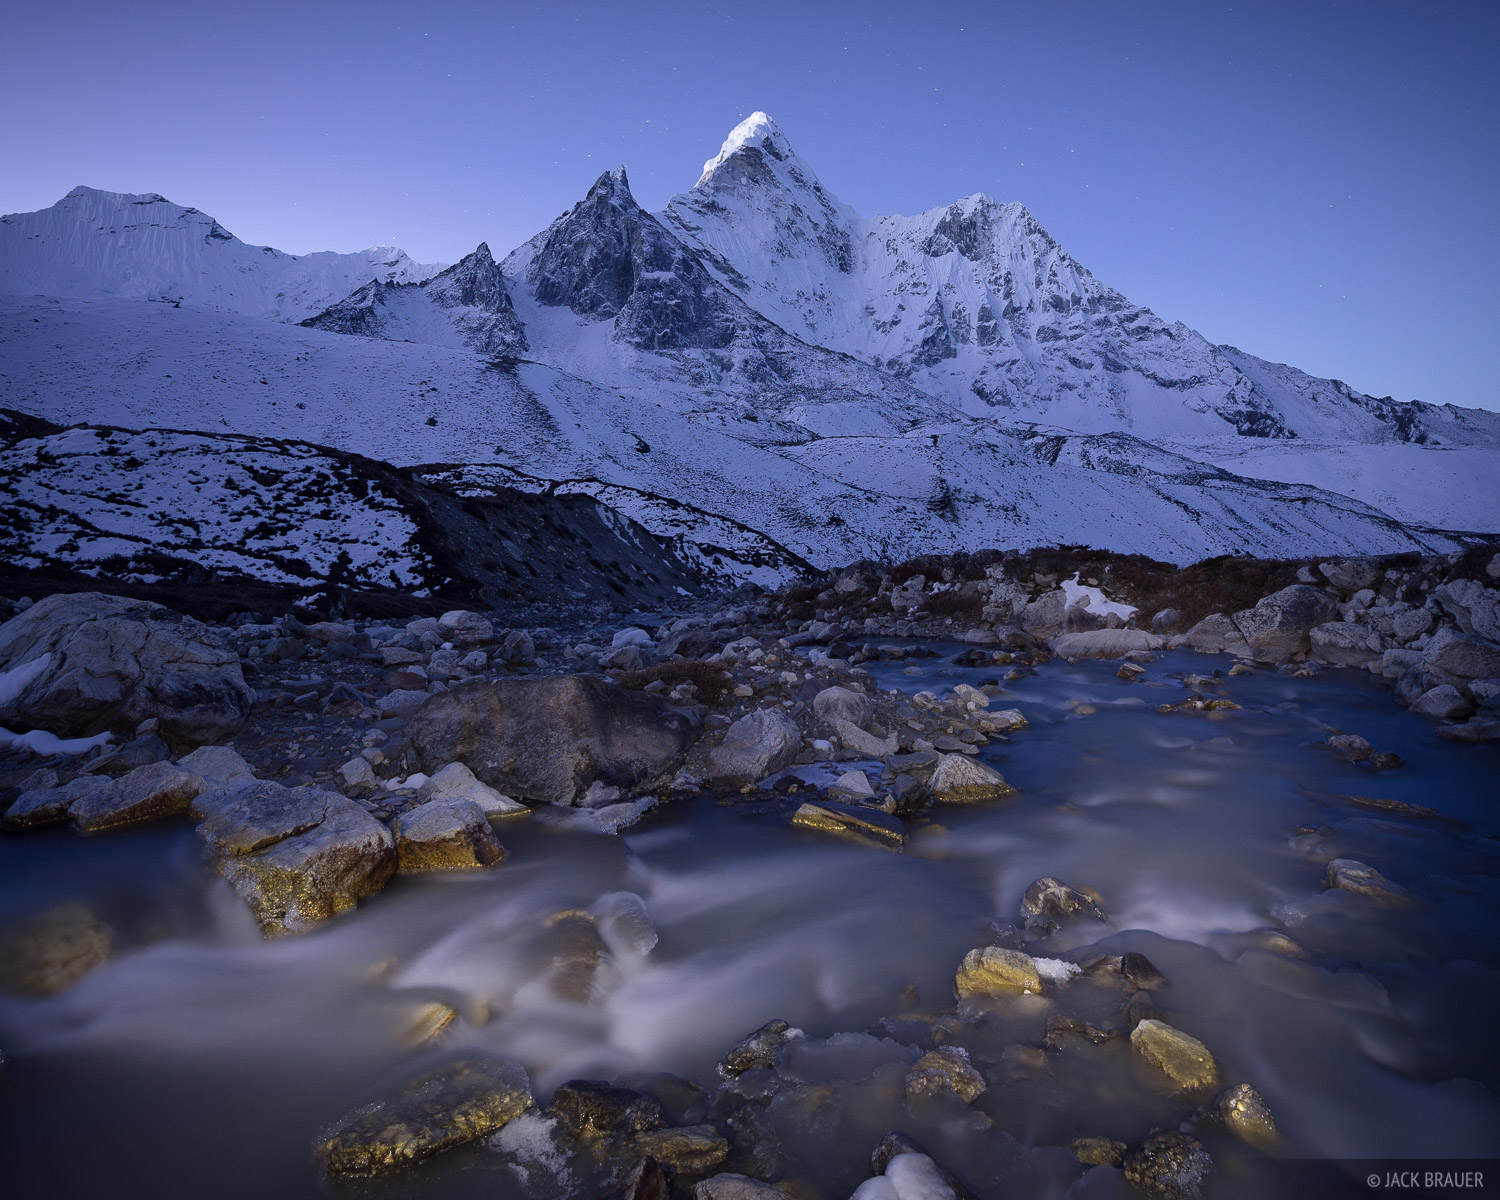 The north side of Ama Dablam at dawn, as seen from Chhukhung.